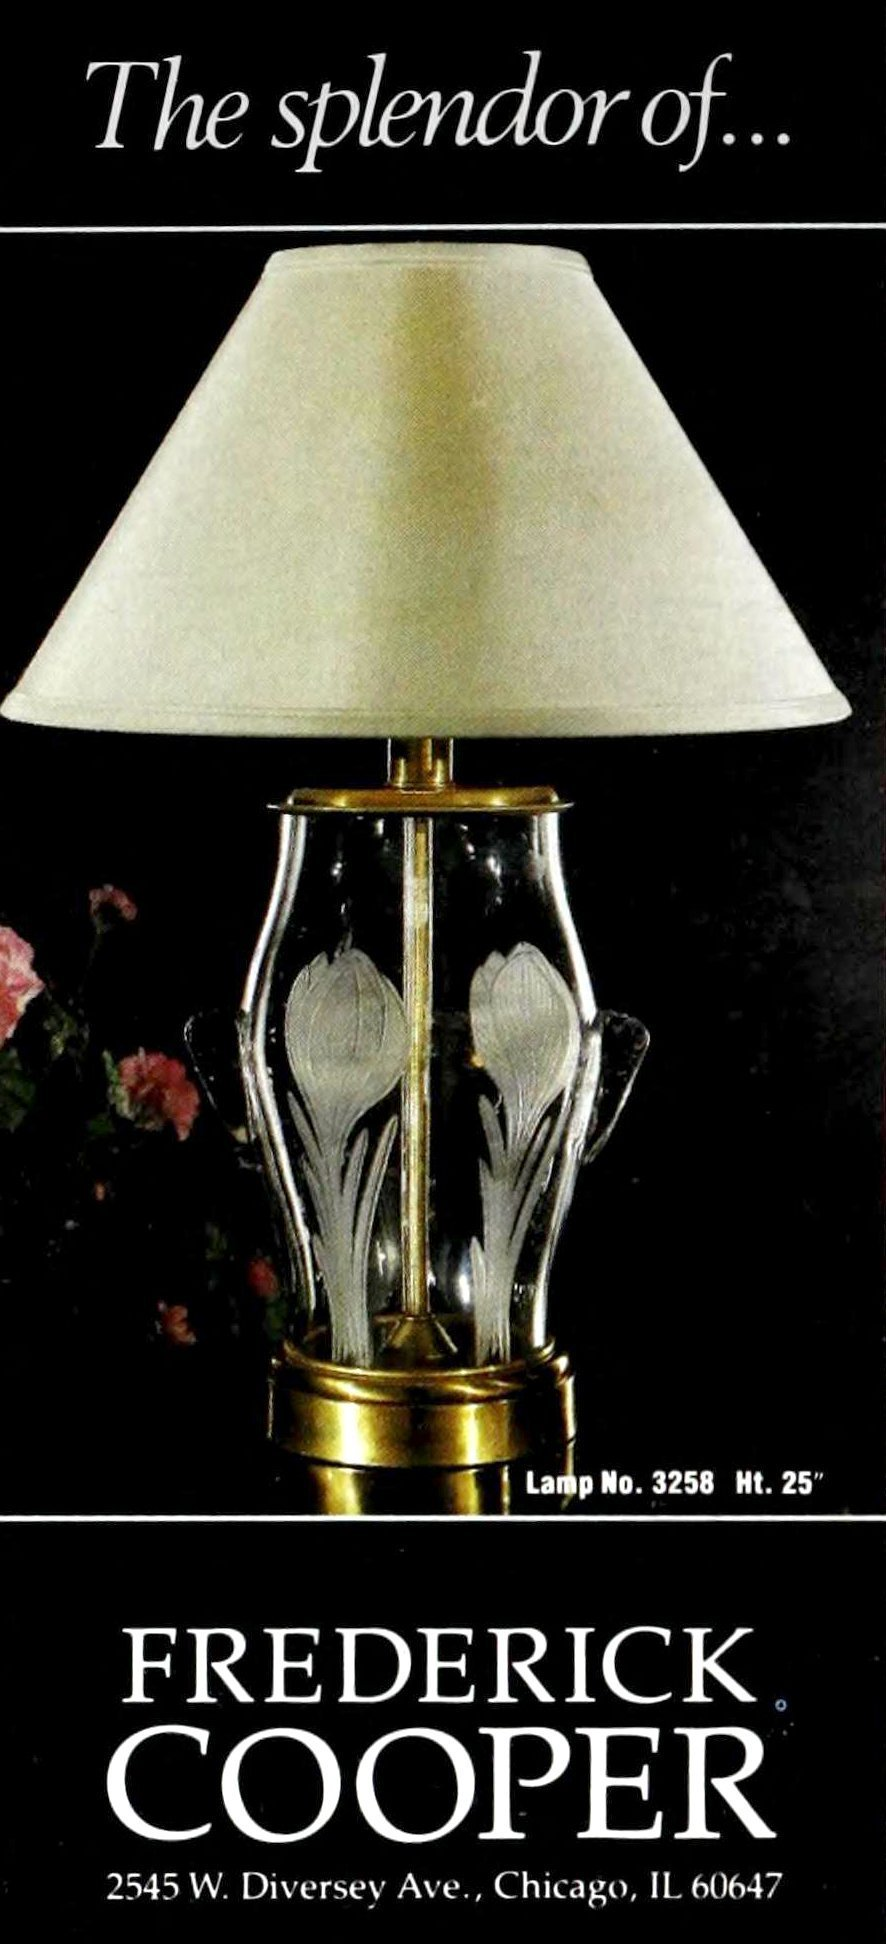 Vintage table lamp by Frederick Cooper of Chicago - 1988 (1)